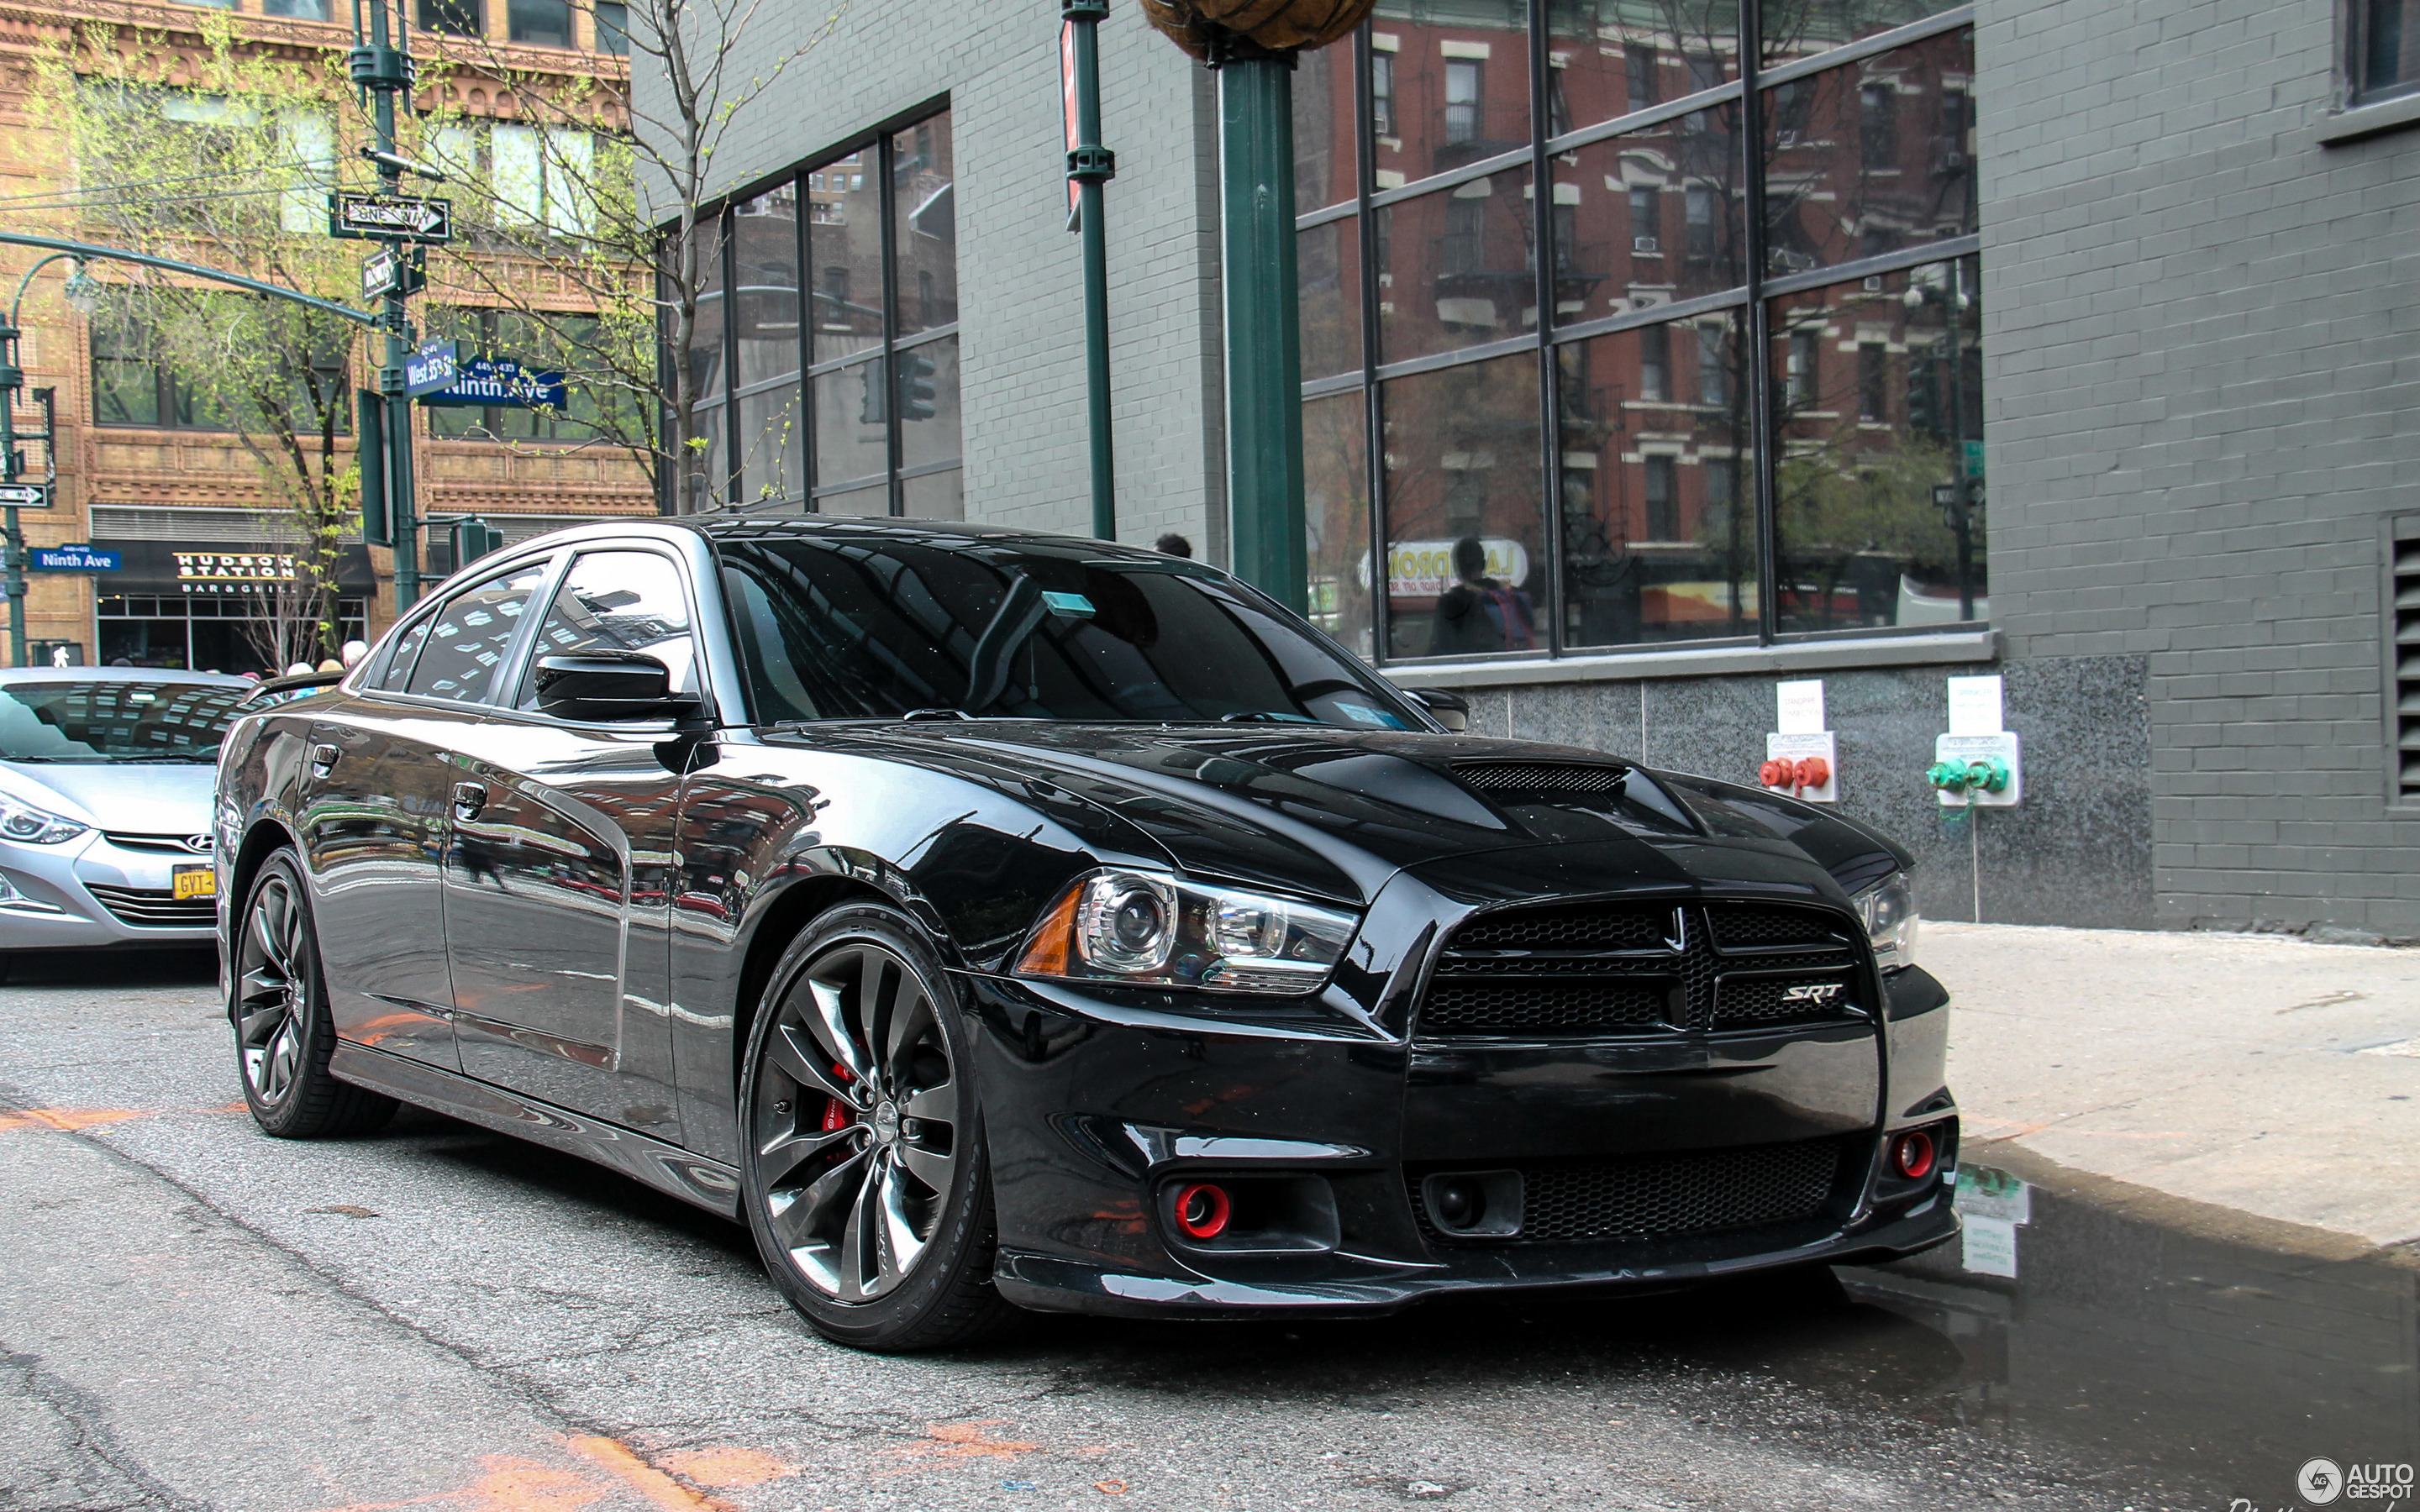 wallpapers dodge high photo bee pictures spin out highresolution charger srt resolution wallpaper at super